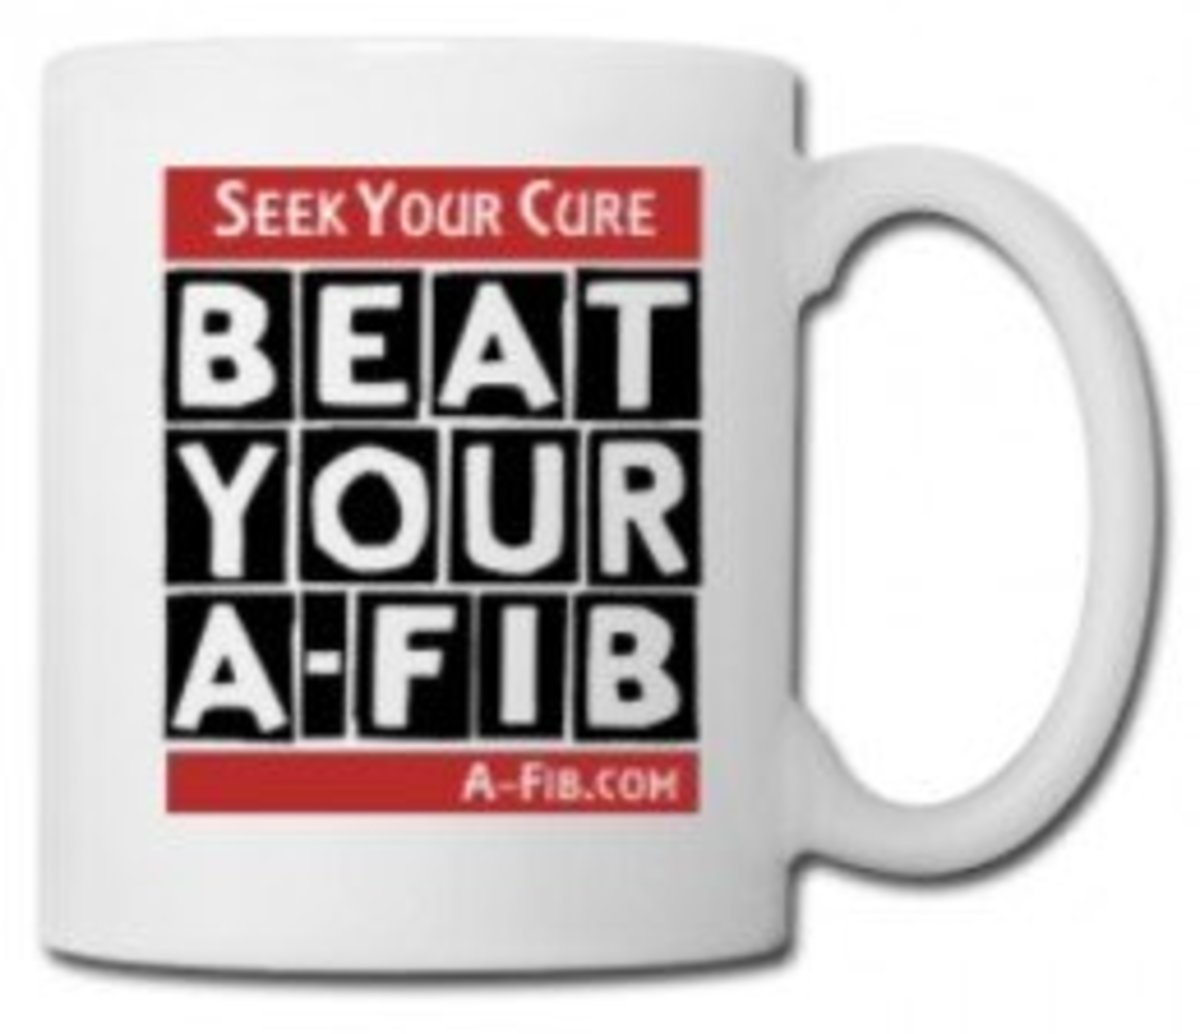 Seek Your Cure: Beat Your A-Fib Mug from our 'Spread the word: A-FIB CAN BE CURED' shop.